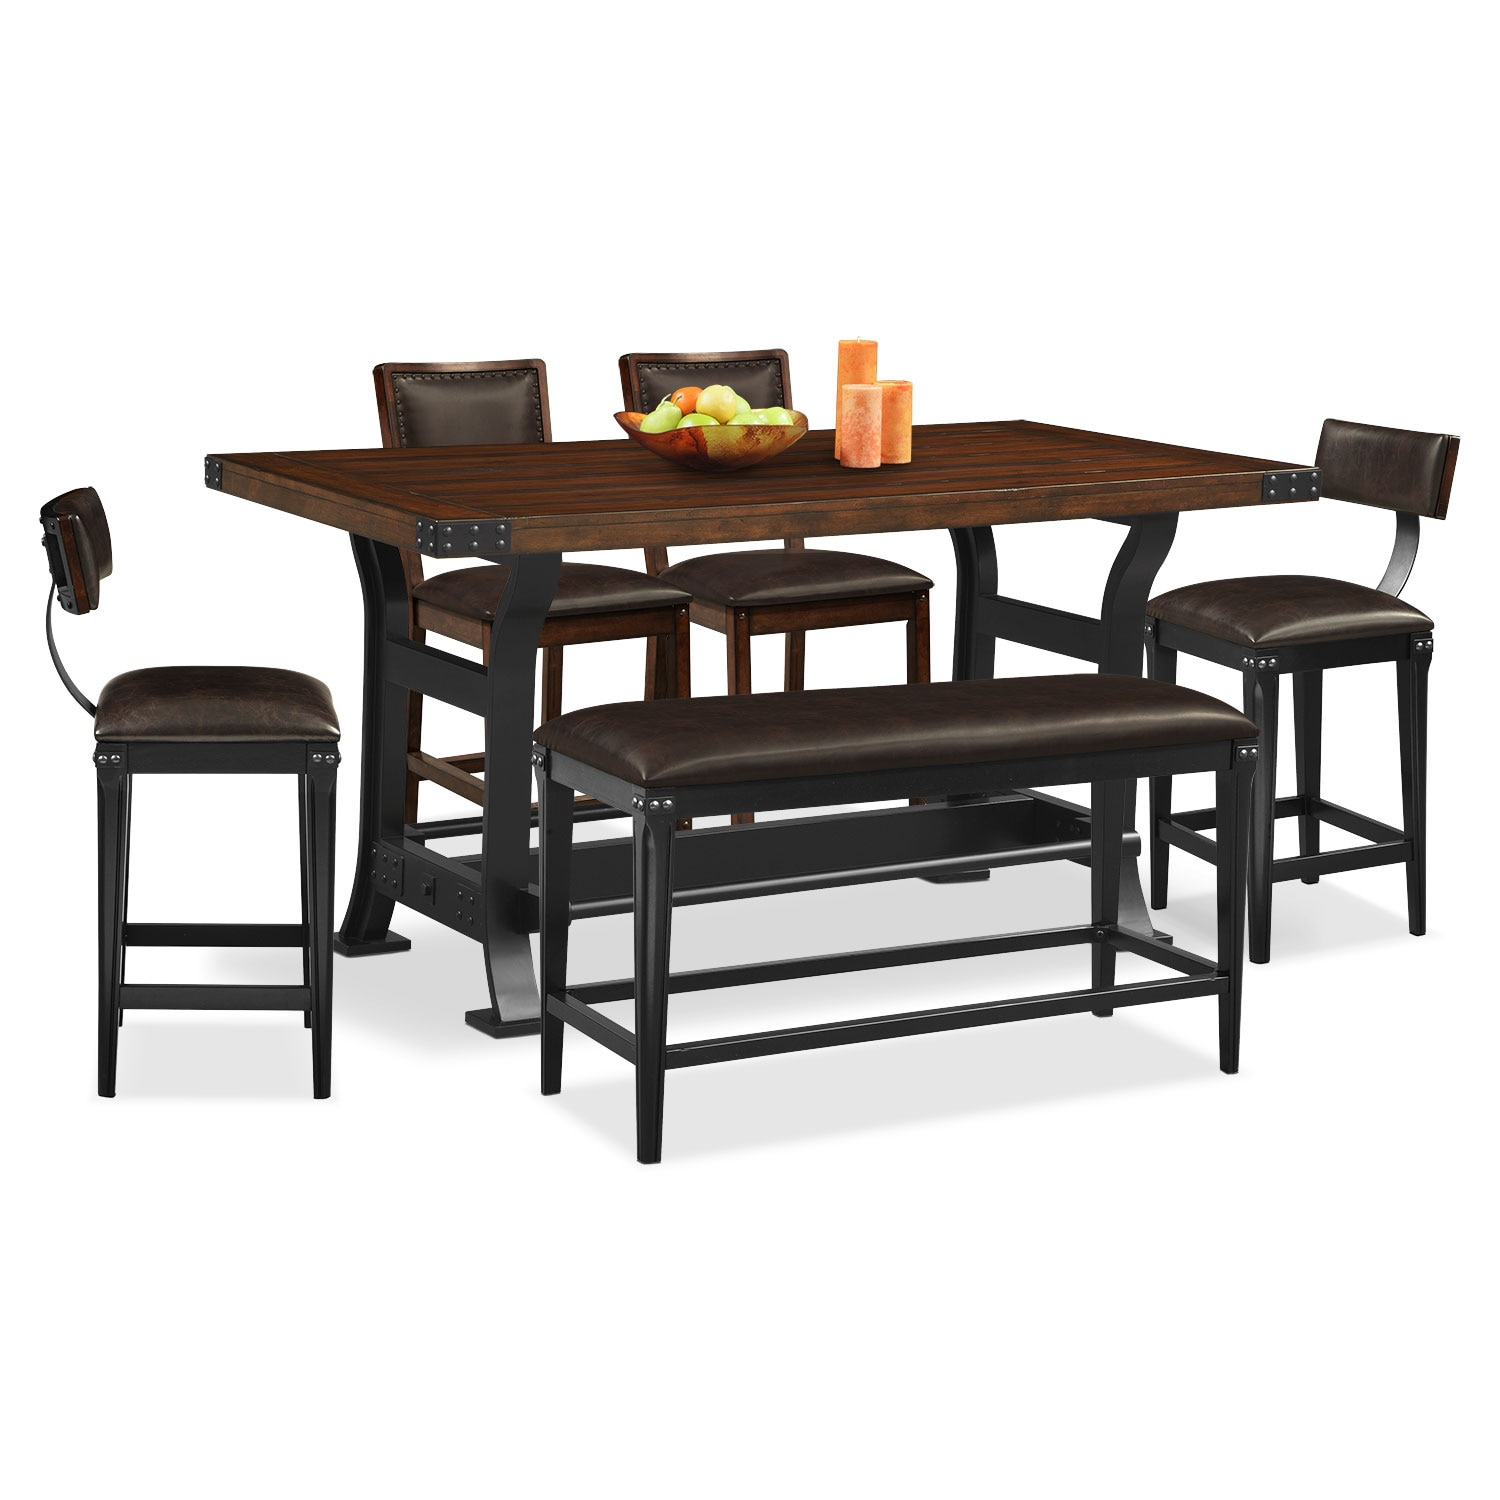 Newcastle Counter Height Dining Table 2 Chairs 2 Stools